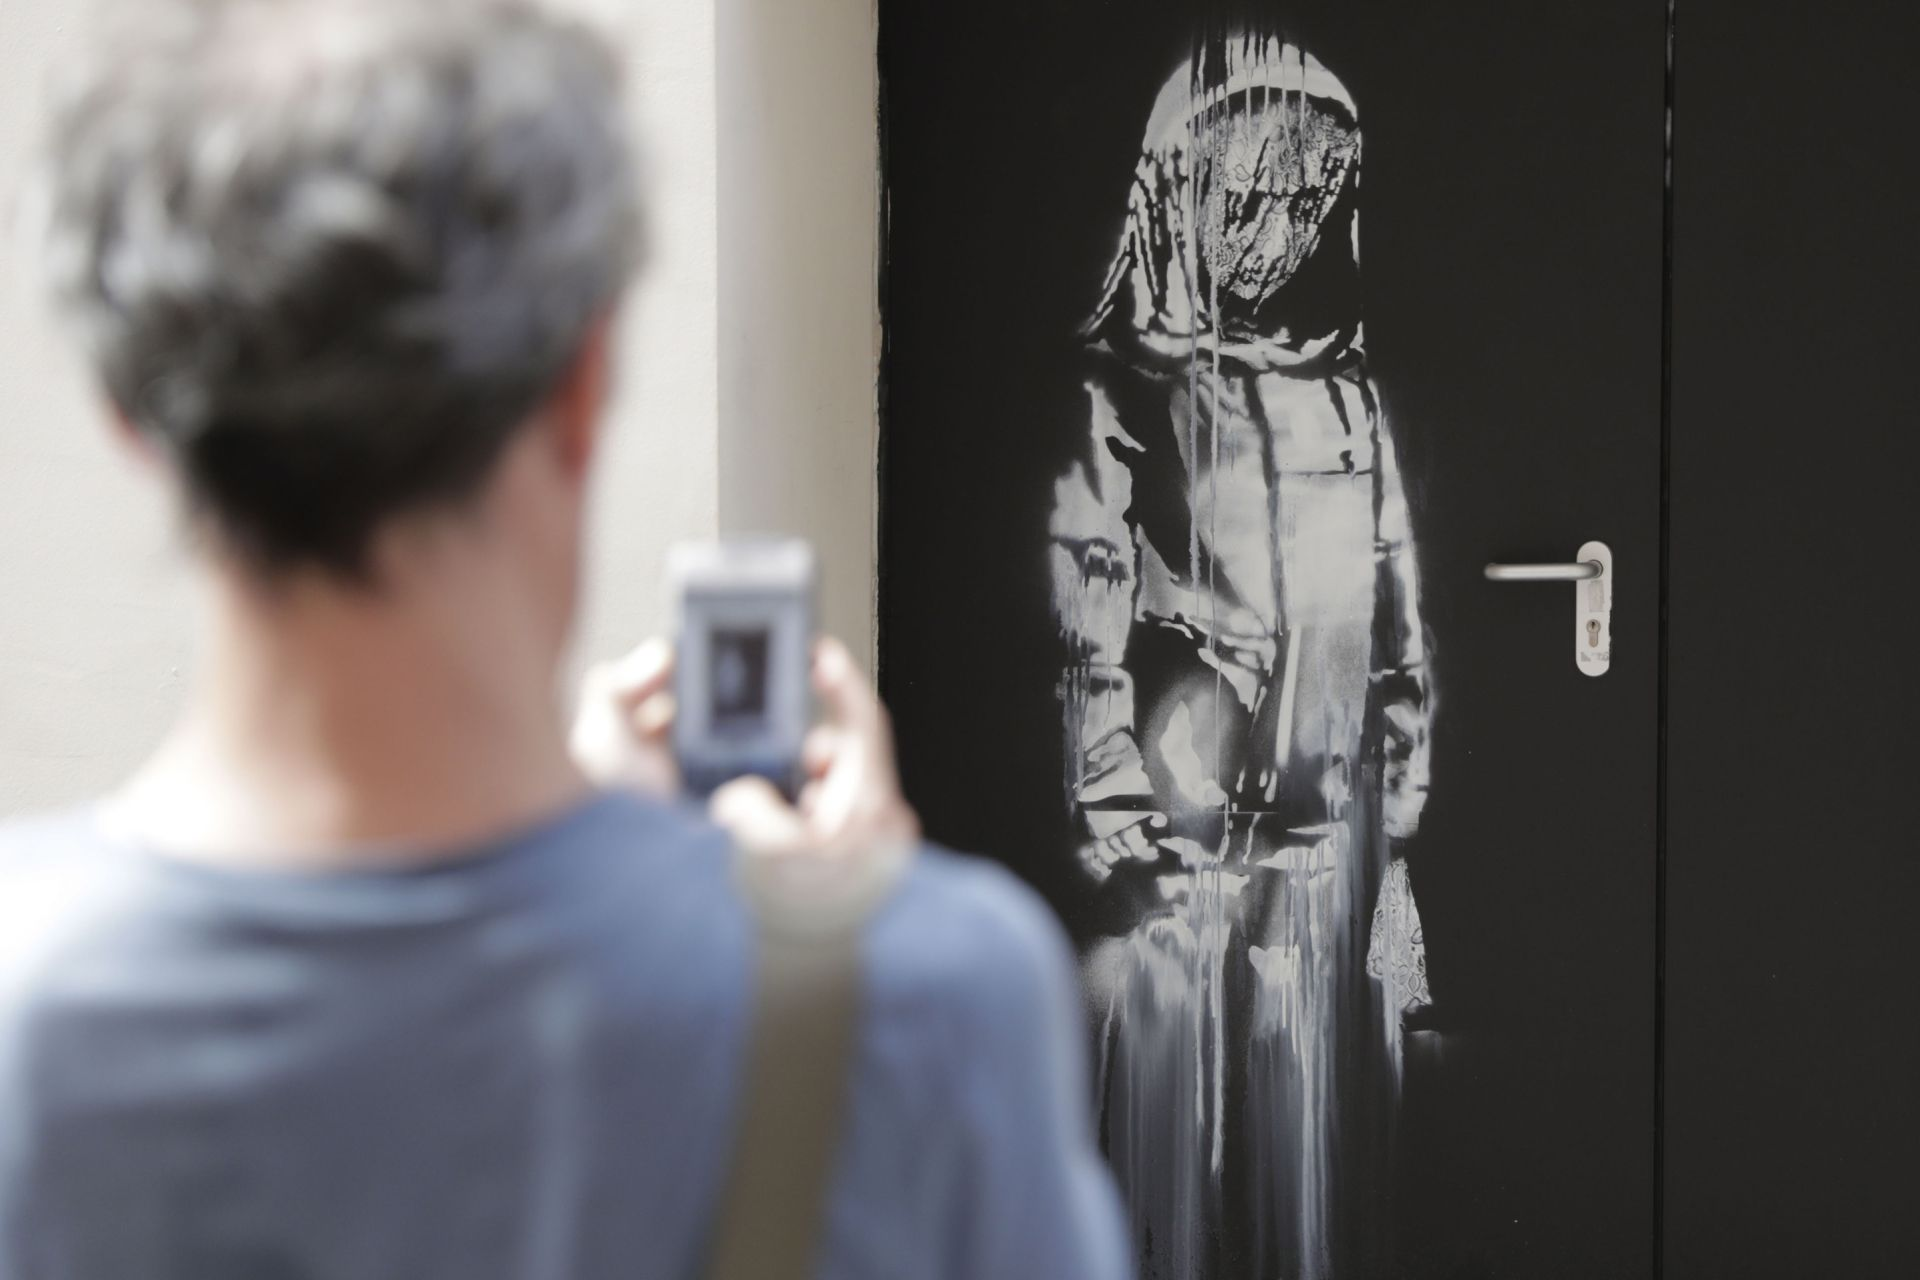 A man takes a photograph of a recent artwork by street artist Banksy in Paris on June 25, 2018, on a side street to the Bataclan concert hall where a terrorist attack killed 90 people on Novembre 13, 2015. - The mysterious British street artist has created a series of new murals in Paris in the last few days. (Photo by Thomas SAMSON / AFP)